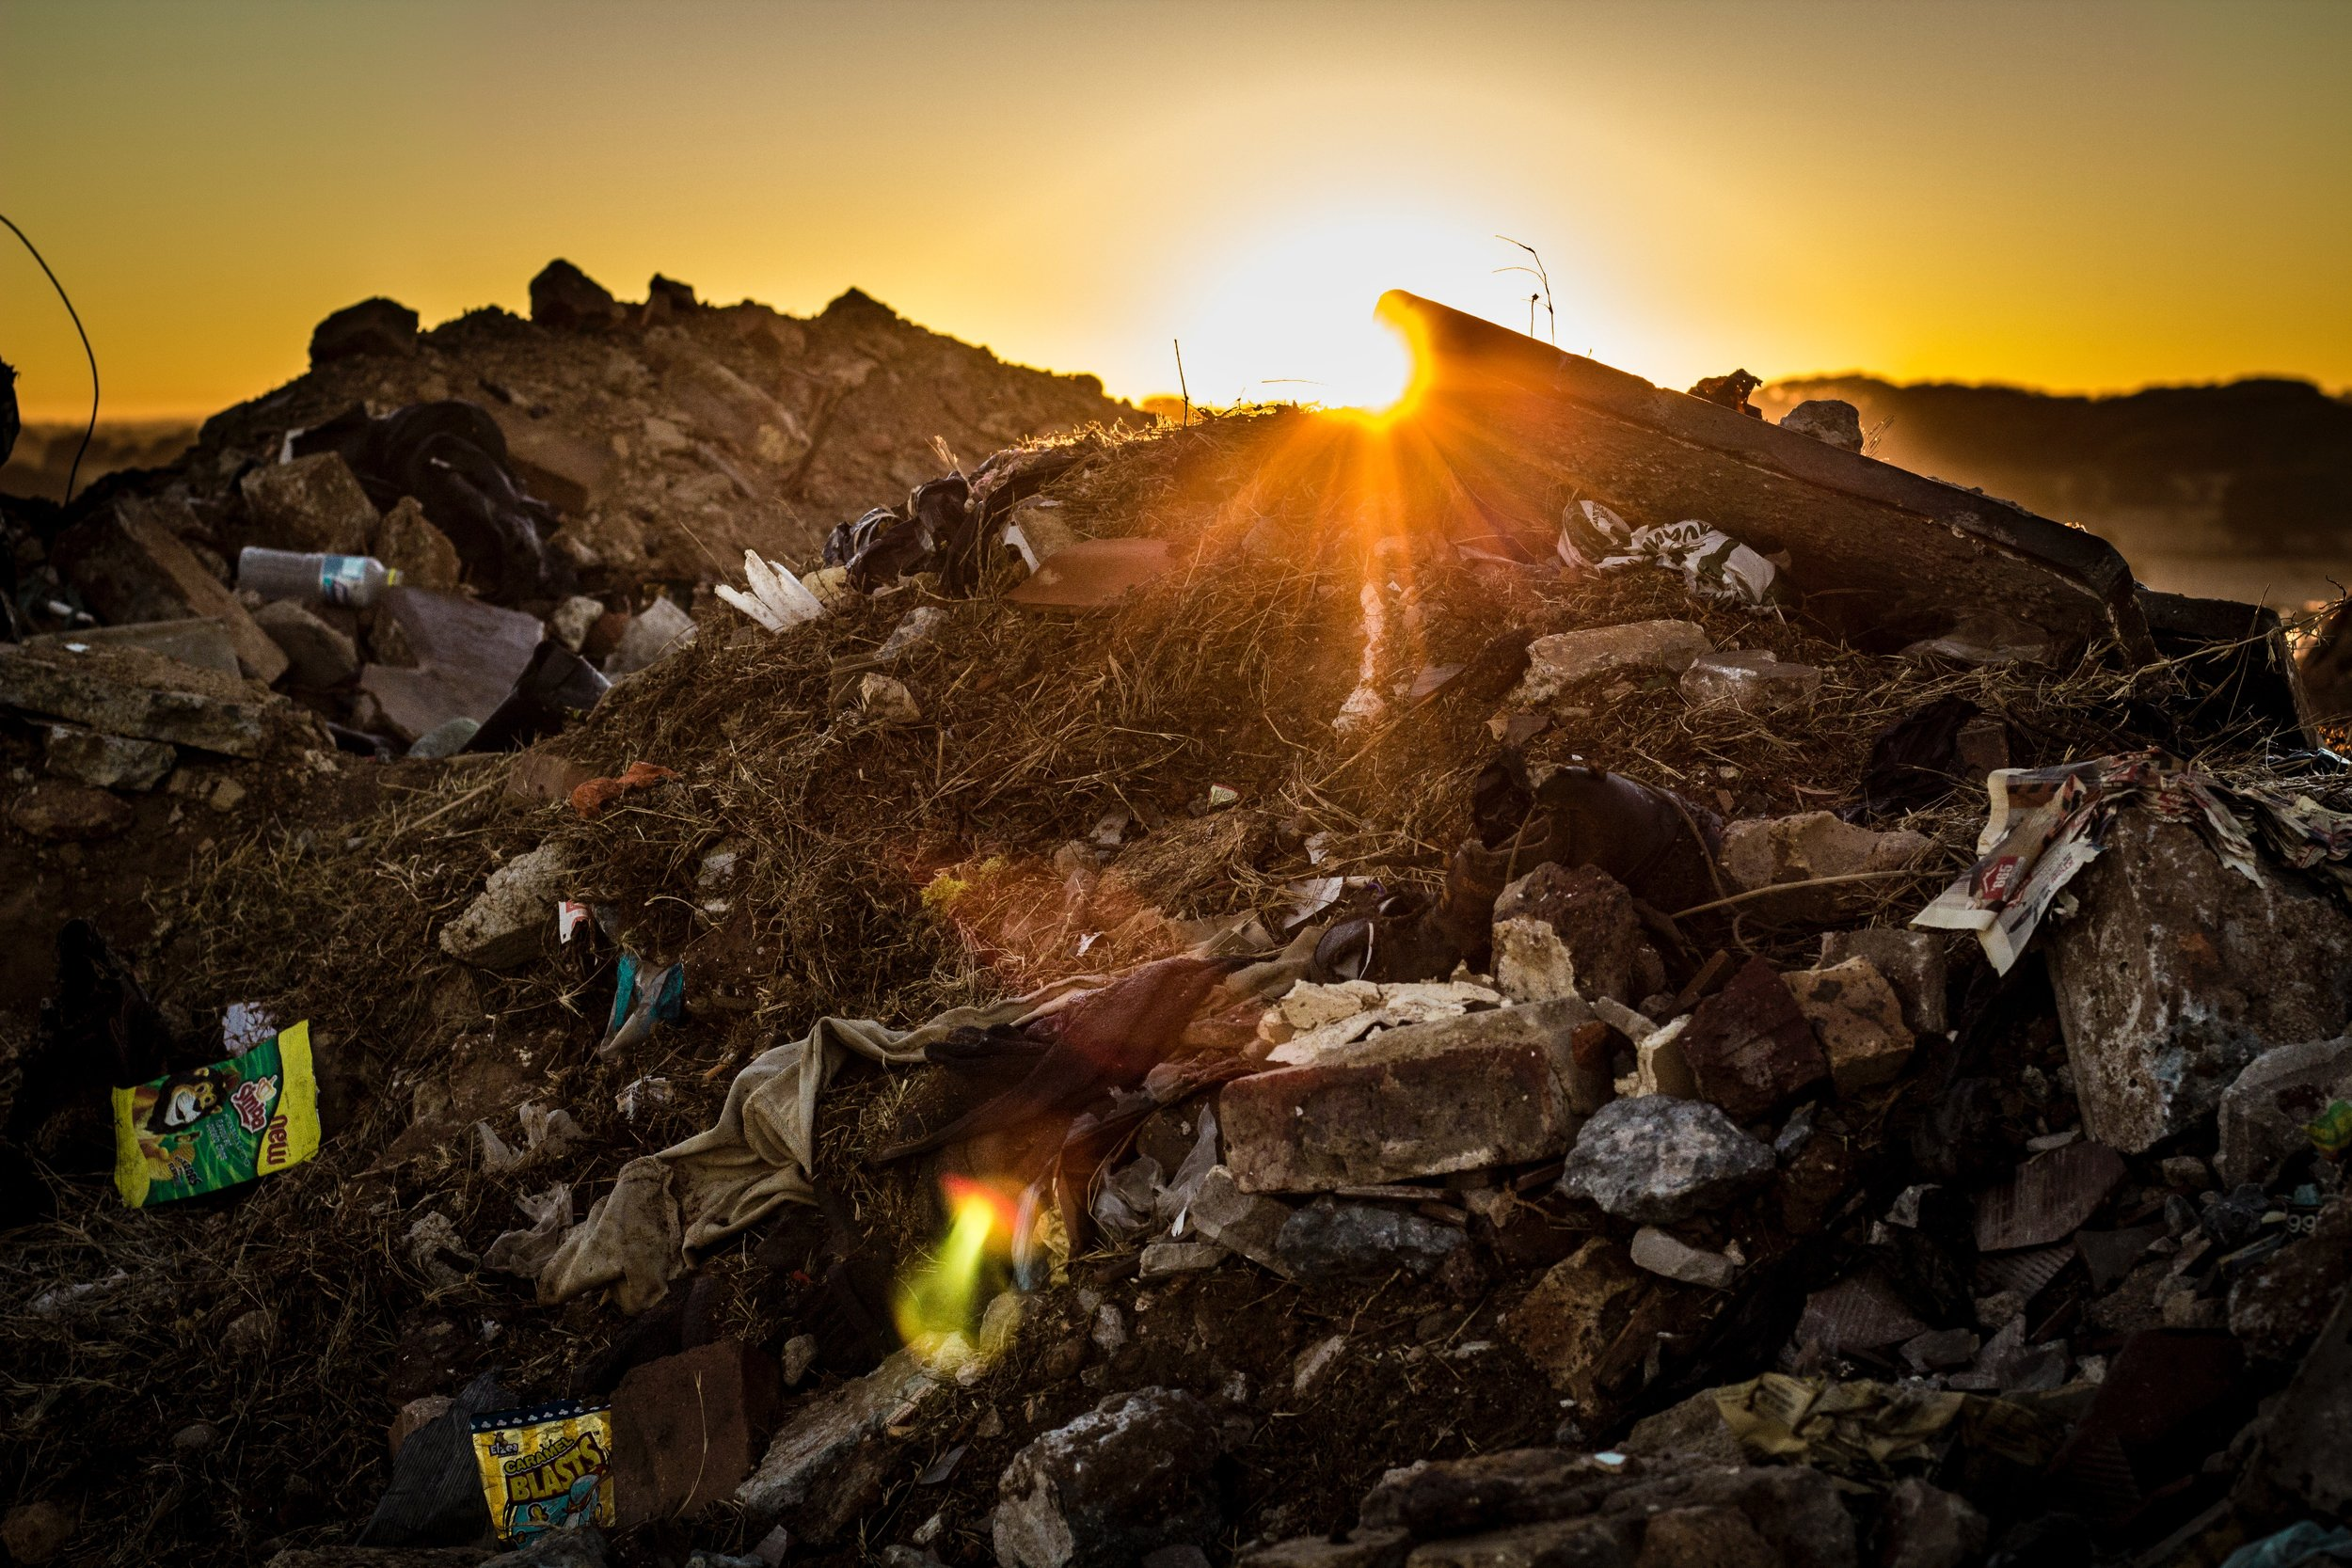 Every year Americans throw 13 million tons of textile material into the landfill.